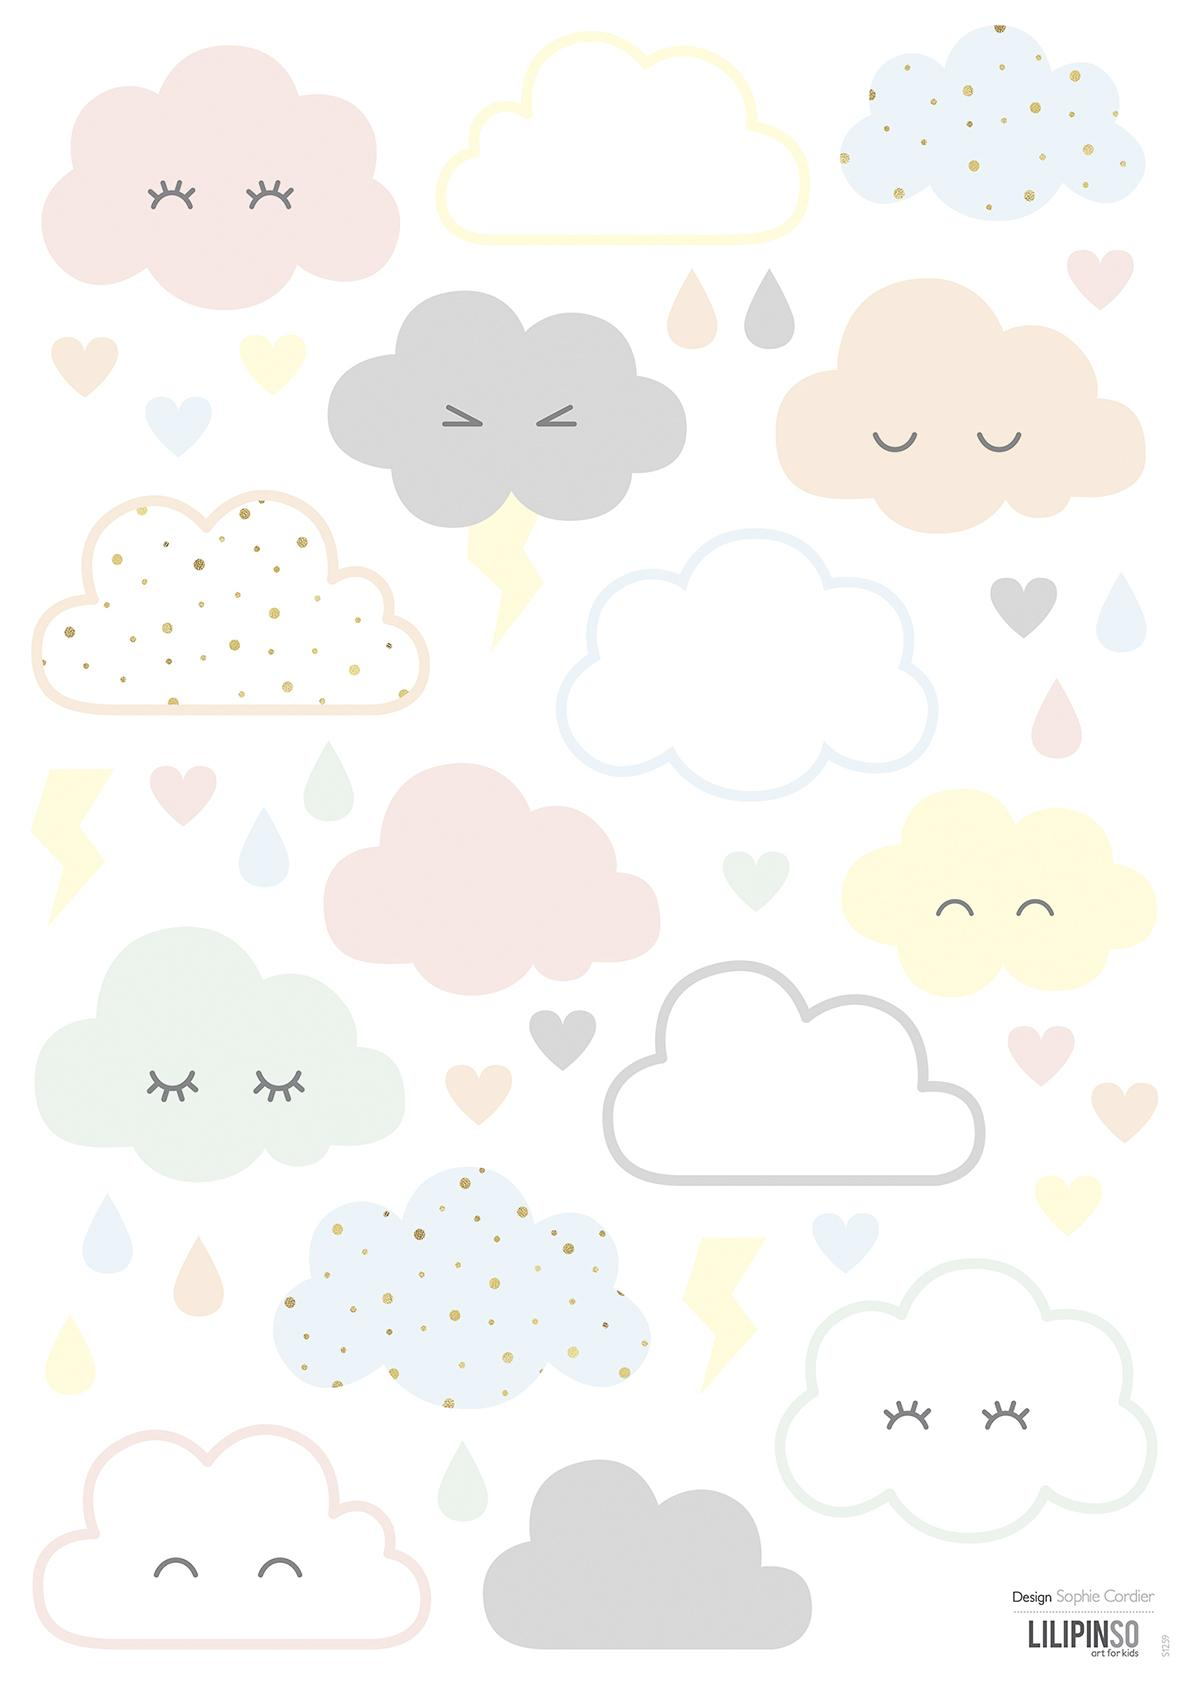 Stickers nuages rieurs pastels - Stickers Lilipinso